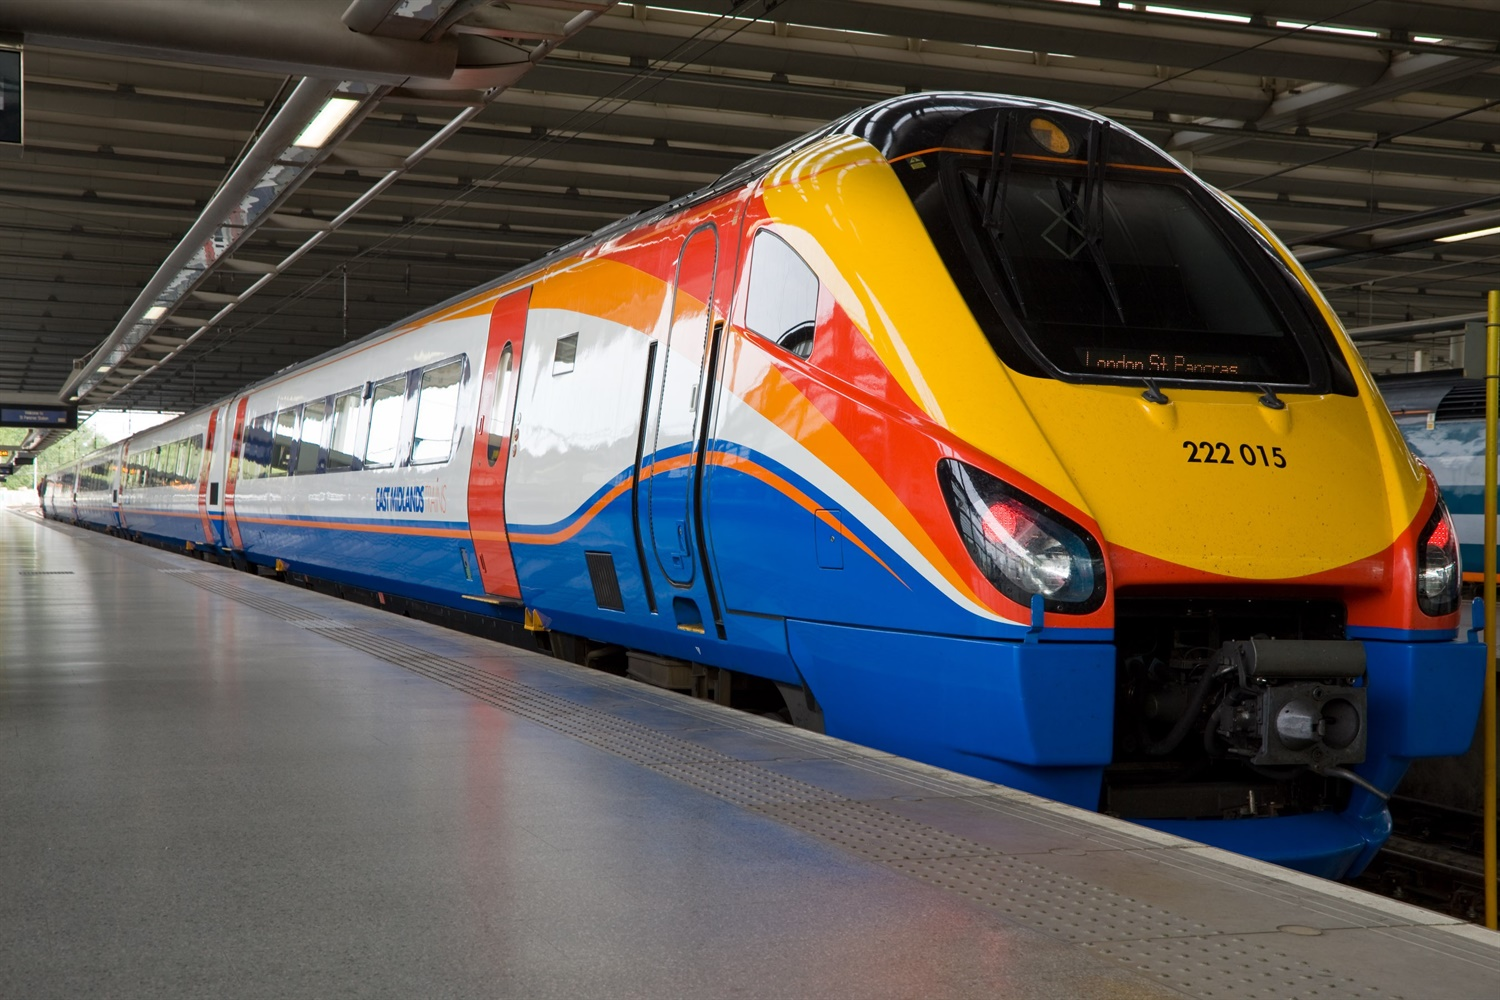 Stagecoach took £35m from rail franchise before abandoning East Coast Main Line